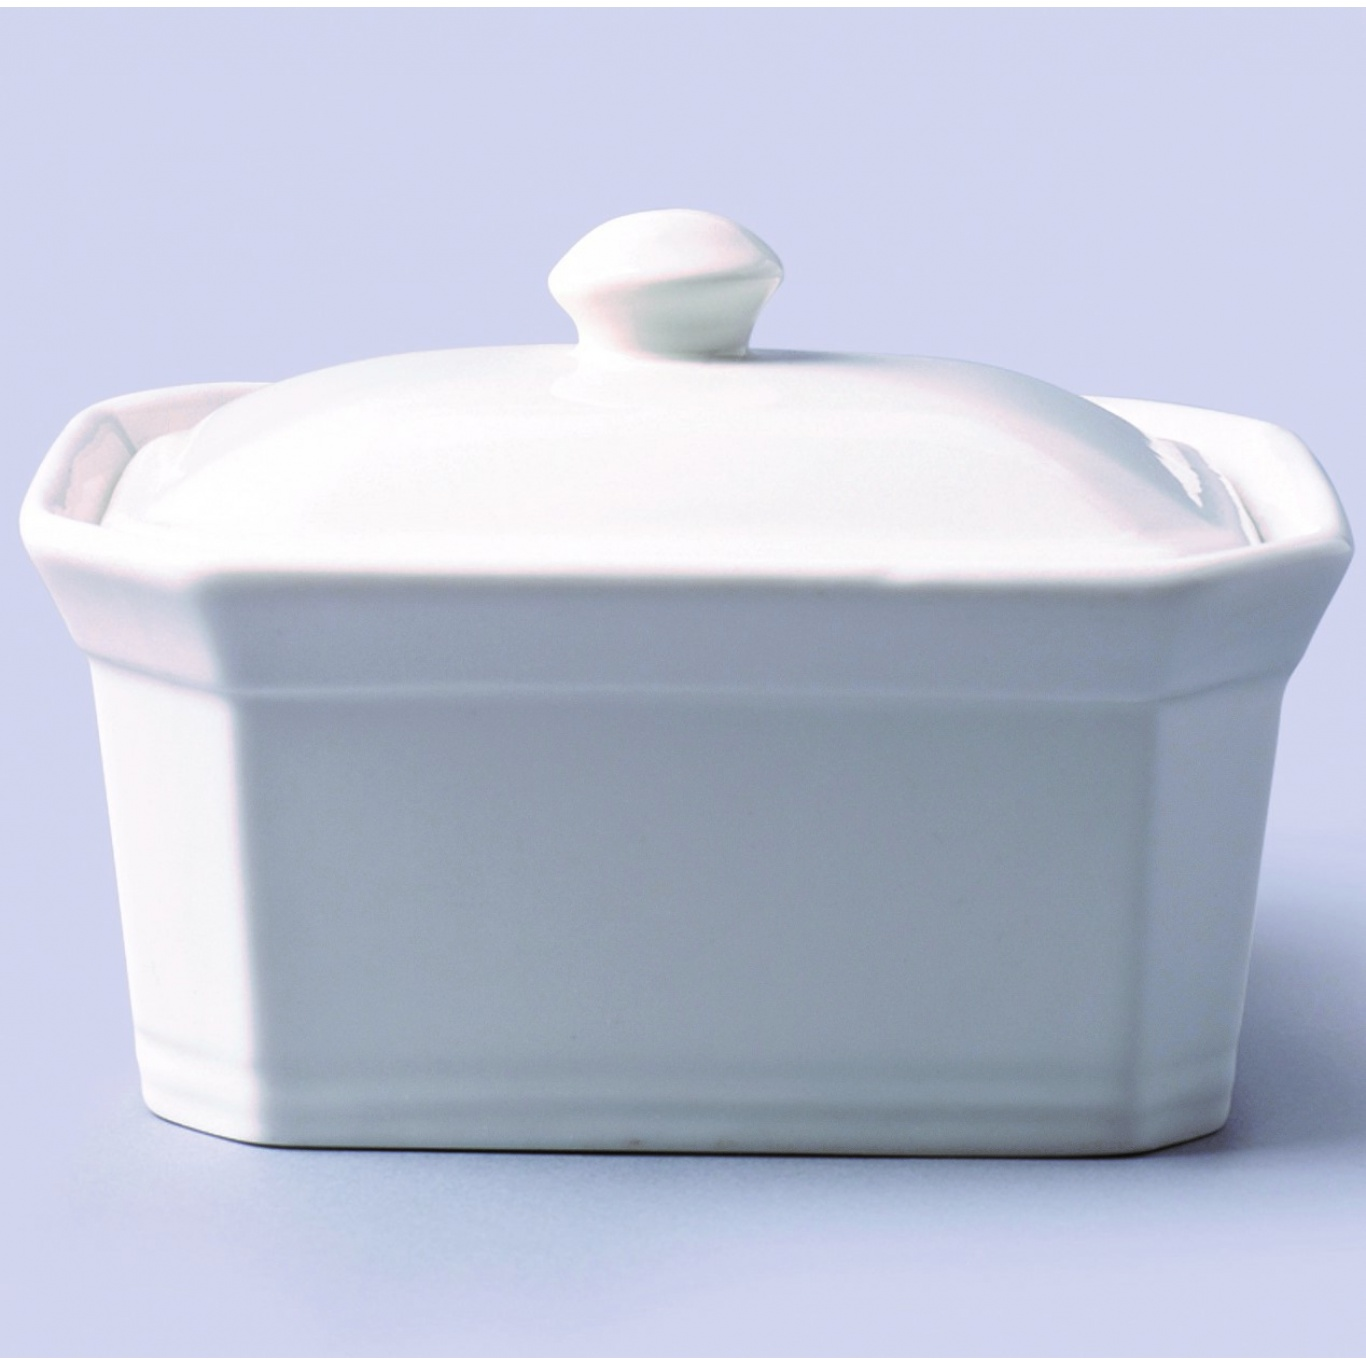 Image of Medium Terrine/Butter Dish with Lid